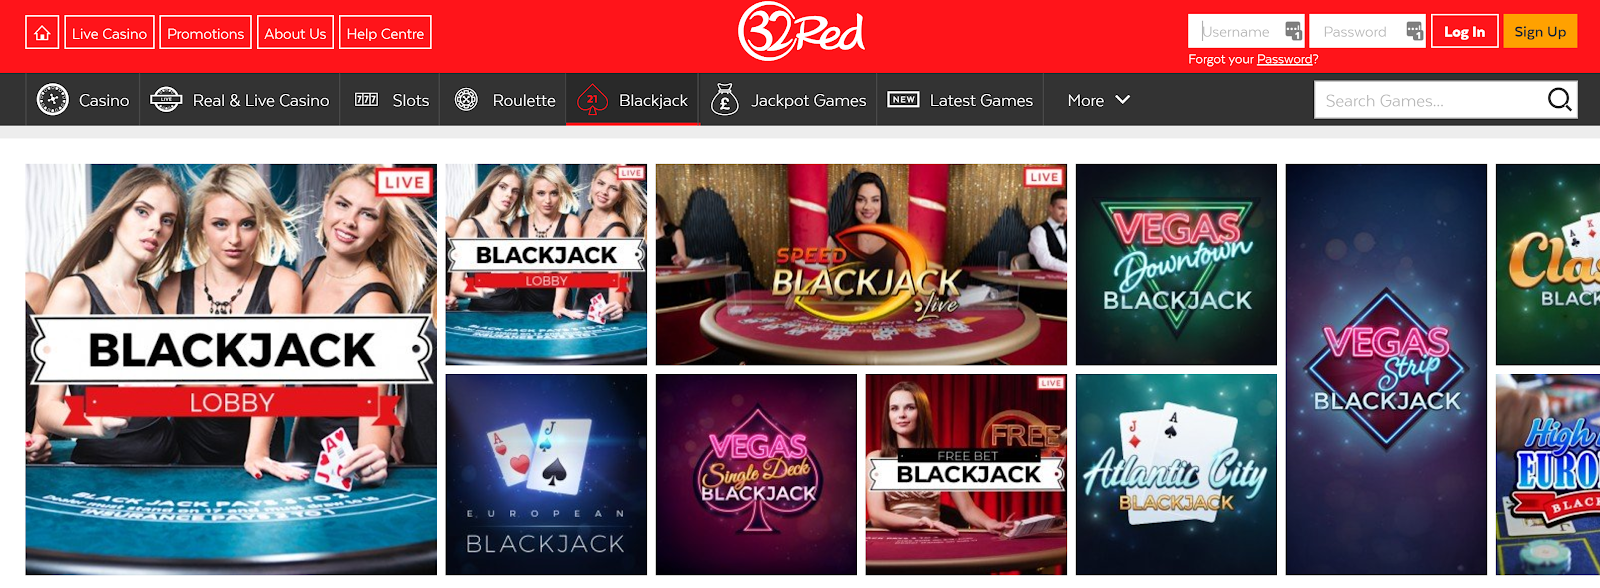 32Red is a great online casino for playing live blackjack games